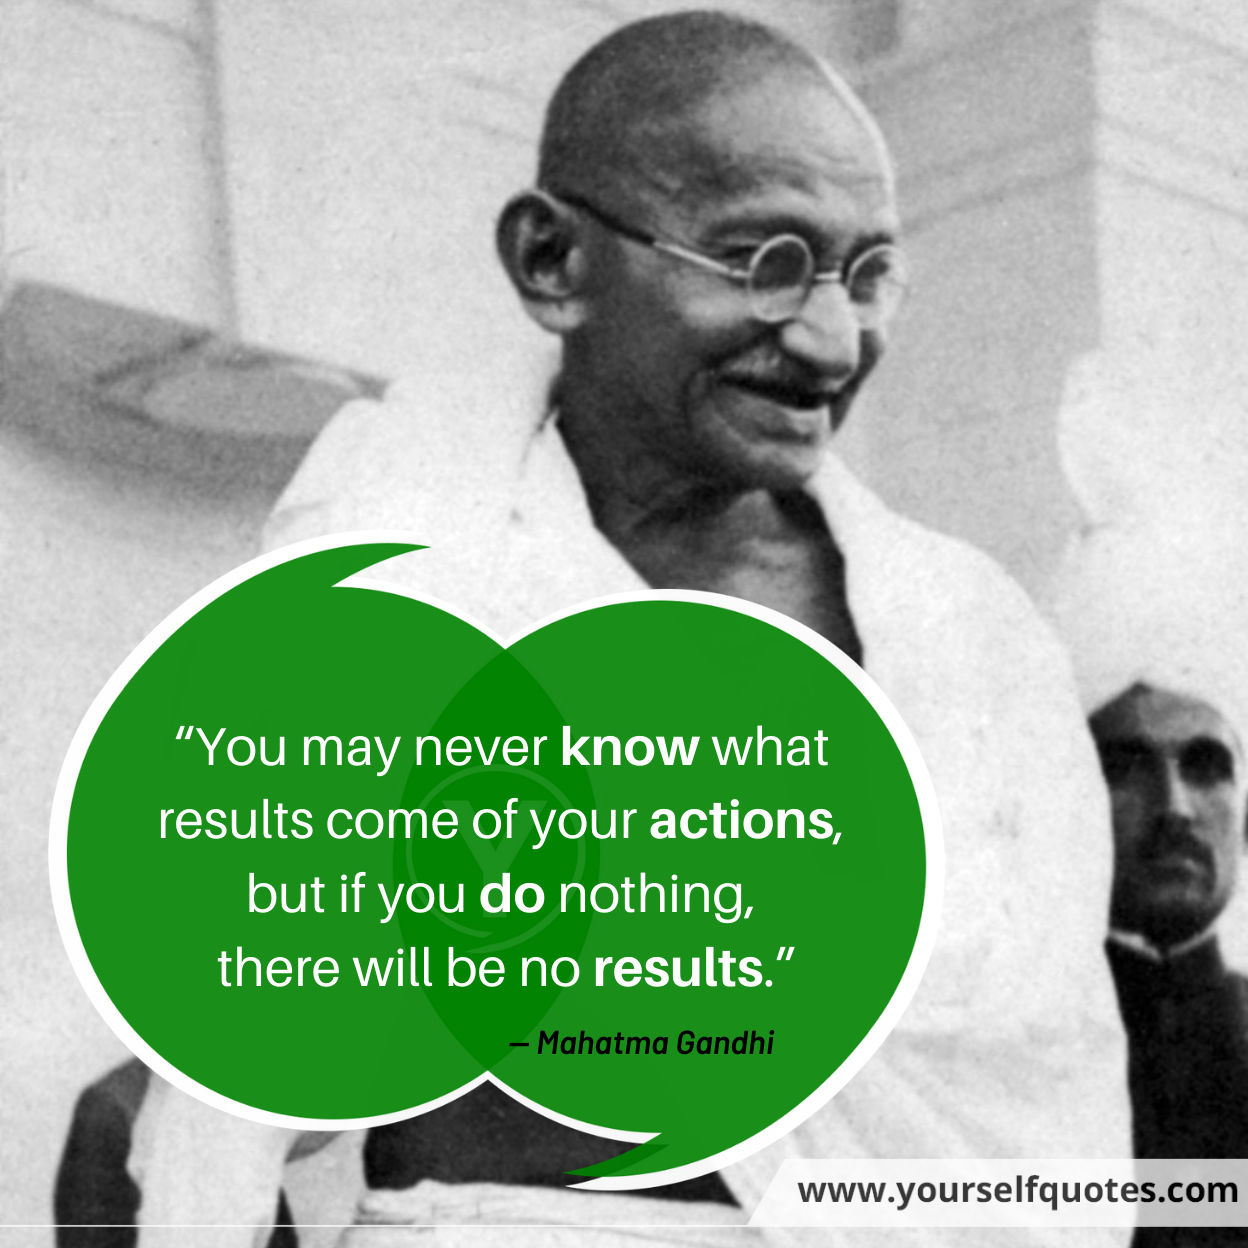 Quote Of The Day by Mahatma Gandhi